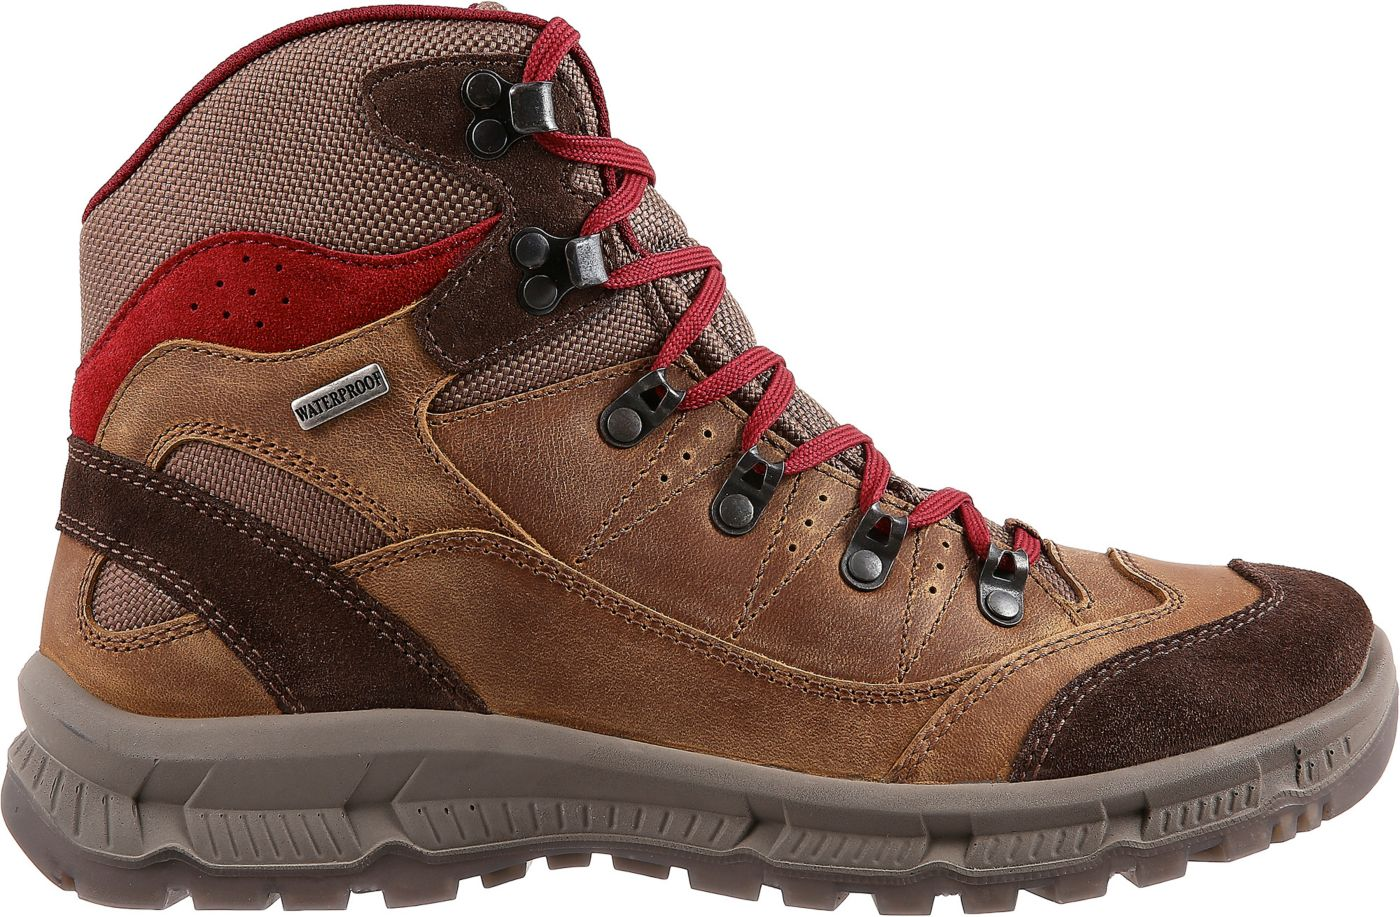 Alpine Design Women's Ascendere Waterproof Hiking Boots